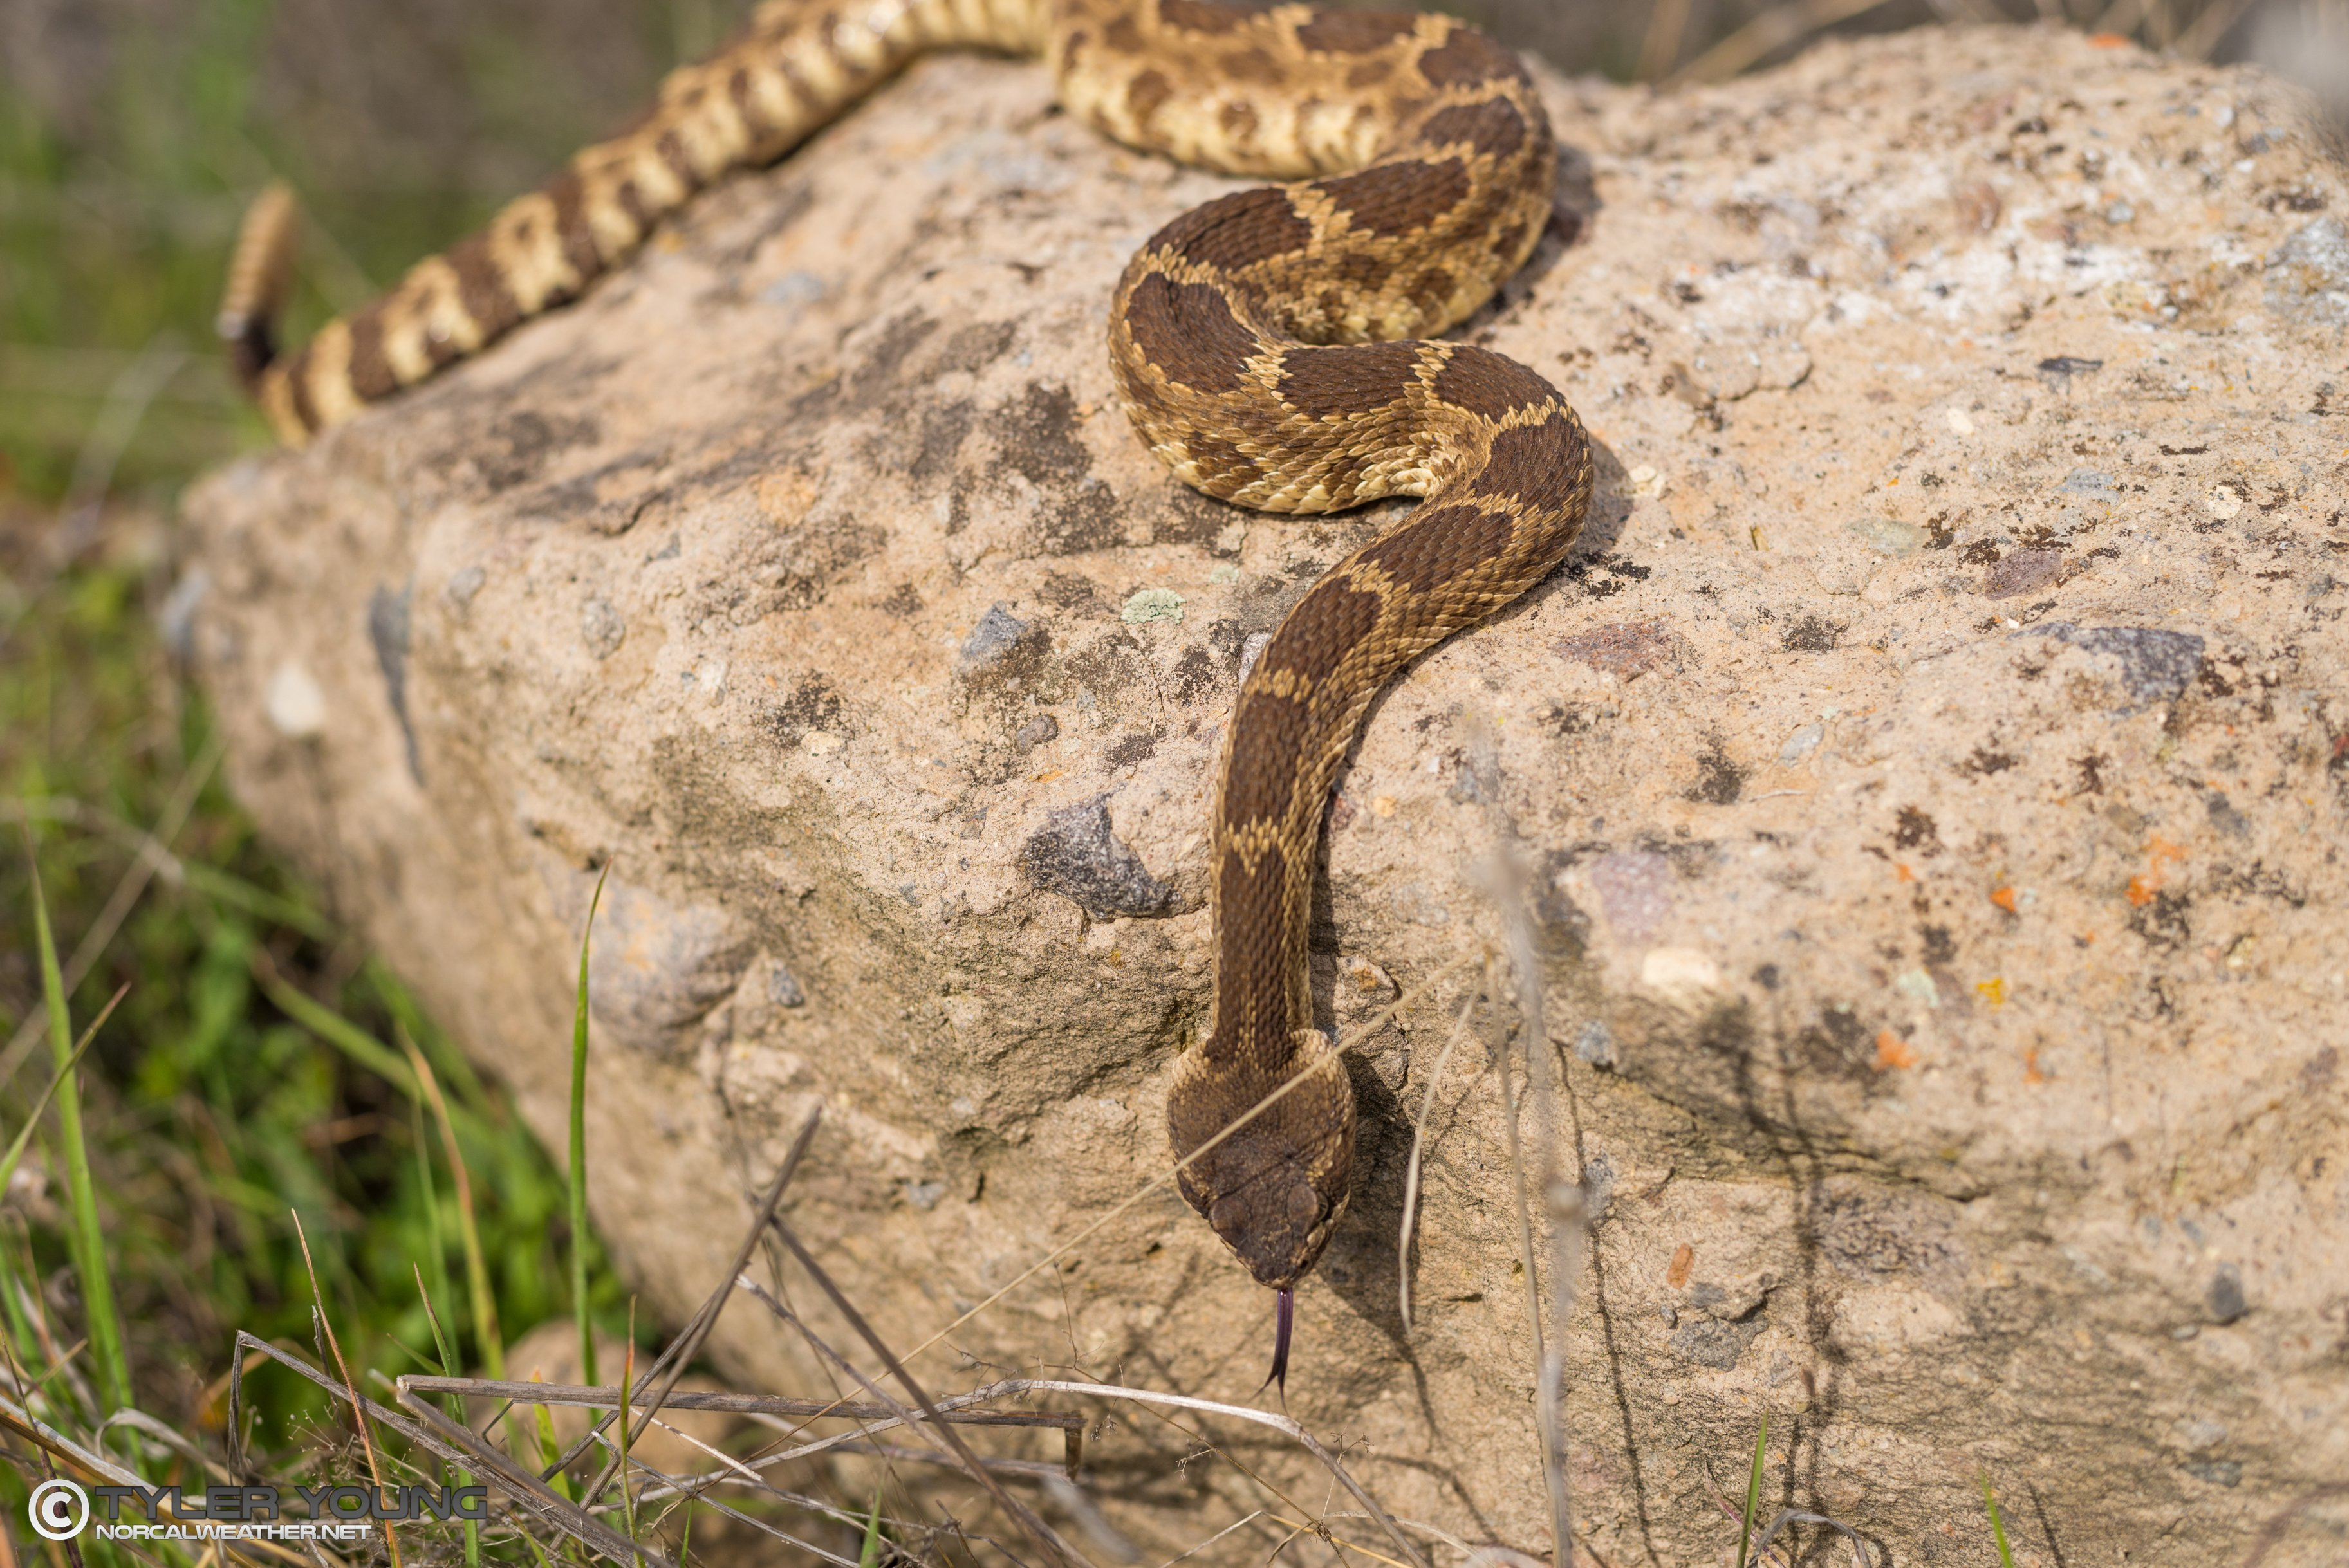 Is it Normal for Rattlesnakes to be out in February?